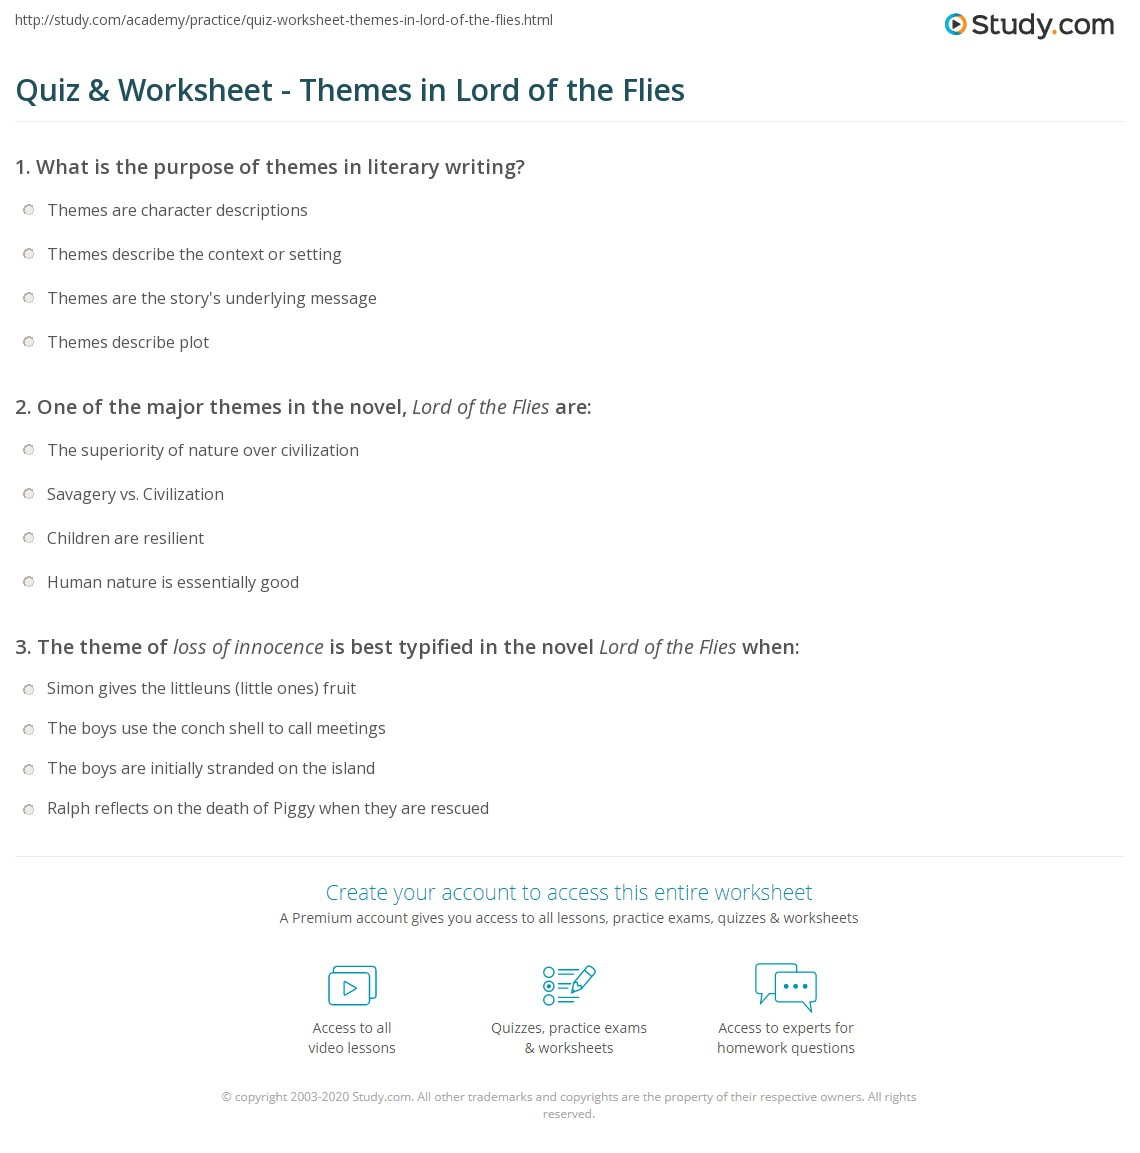 Worksheets Lord Of The Flies Worksheets quiz worksheet themes in lord of the flies study com print worksheet